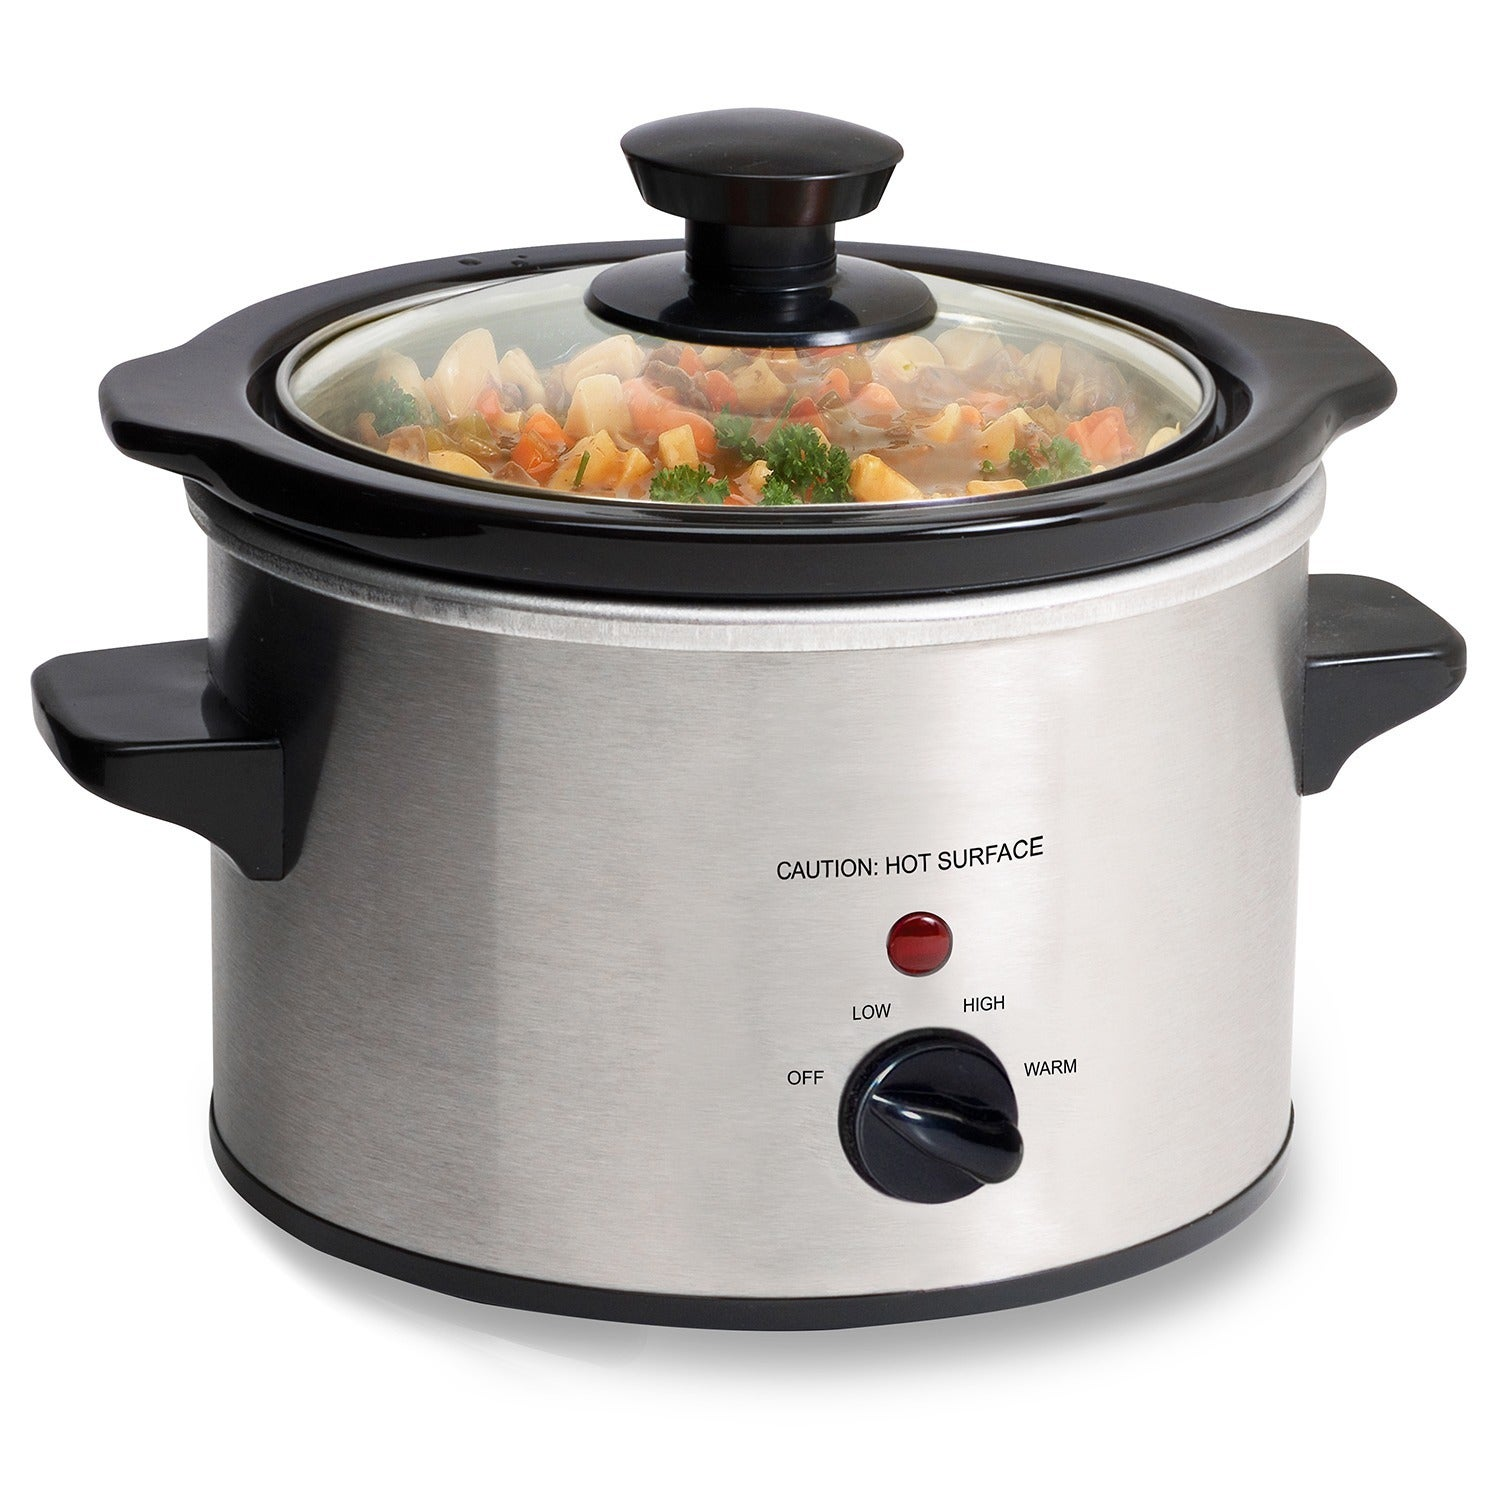 OEM Stainless Steel 1.5-quart Mini Slow Cooker with Remov...